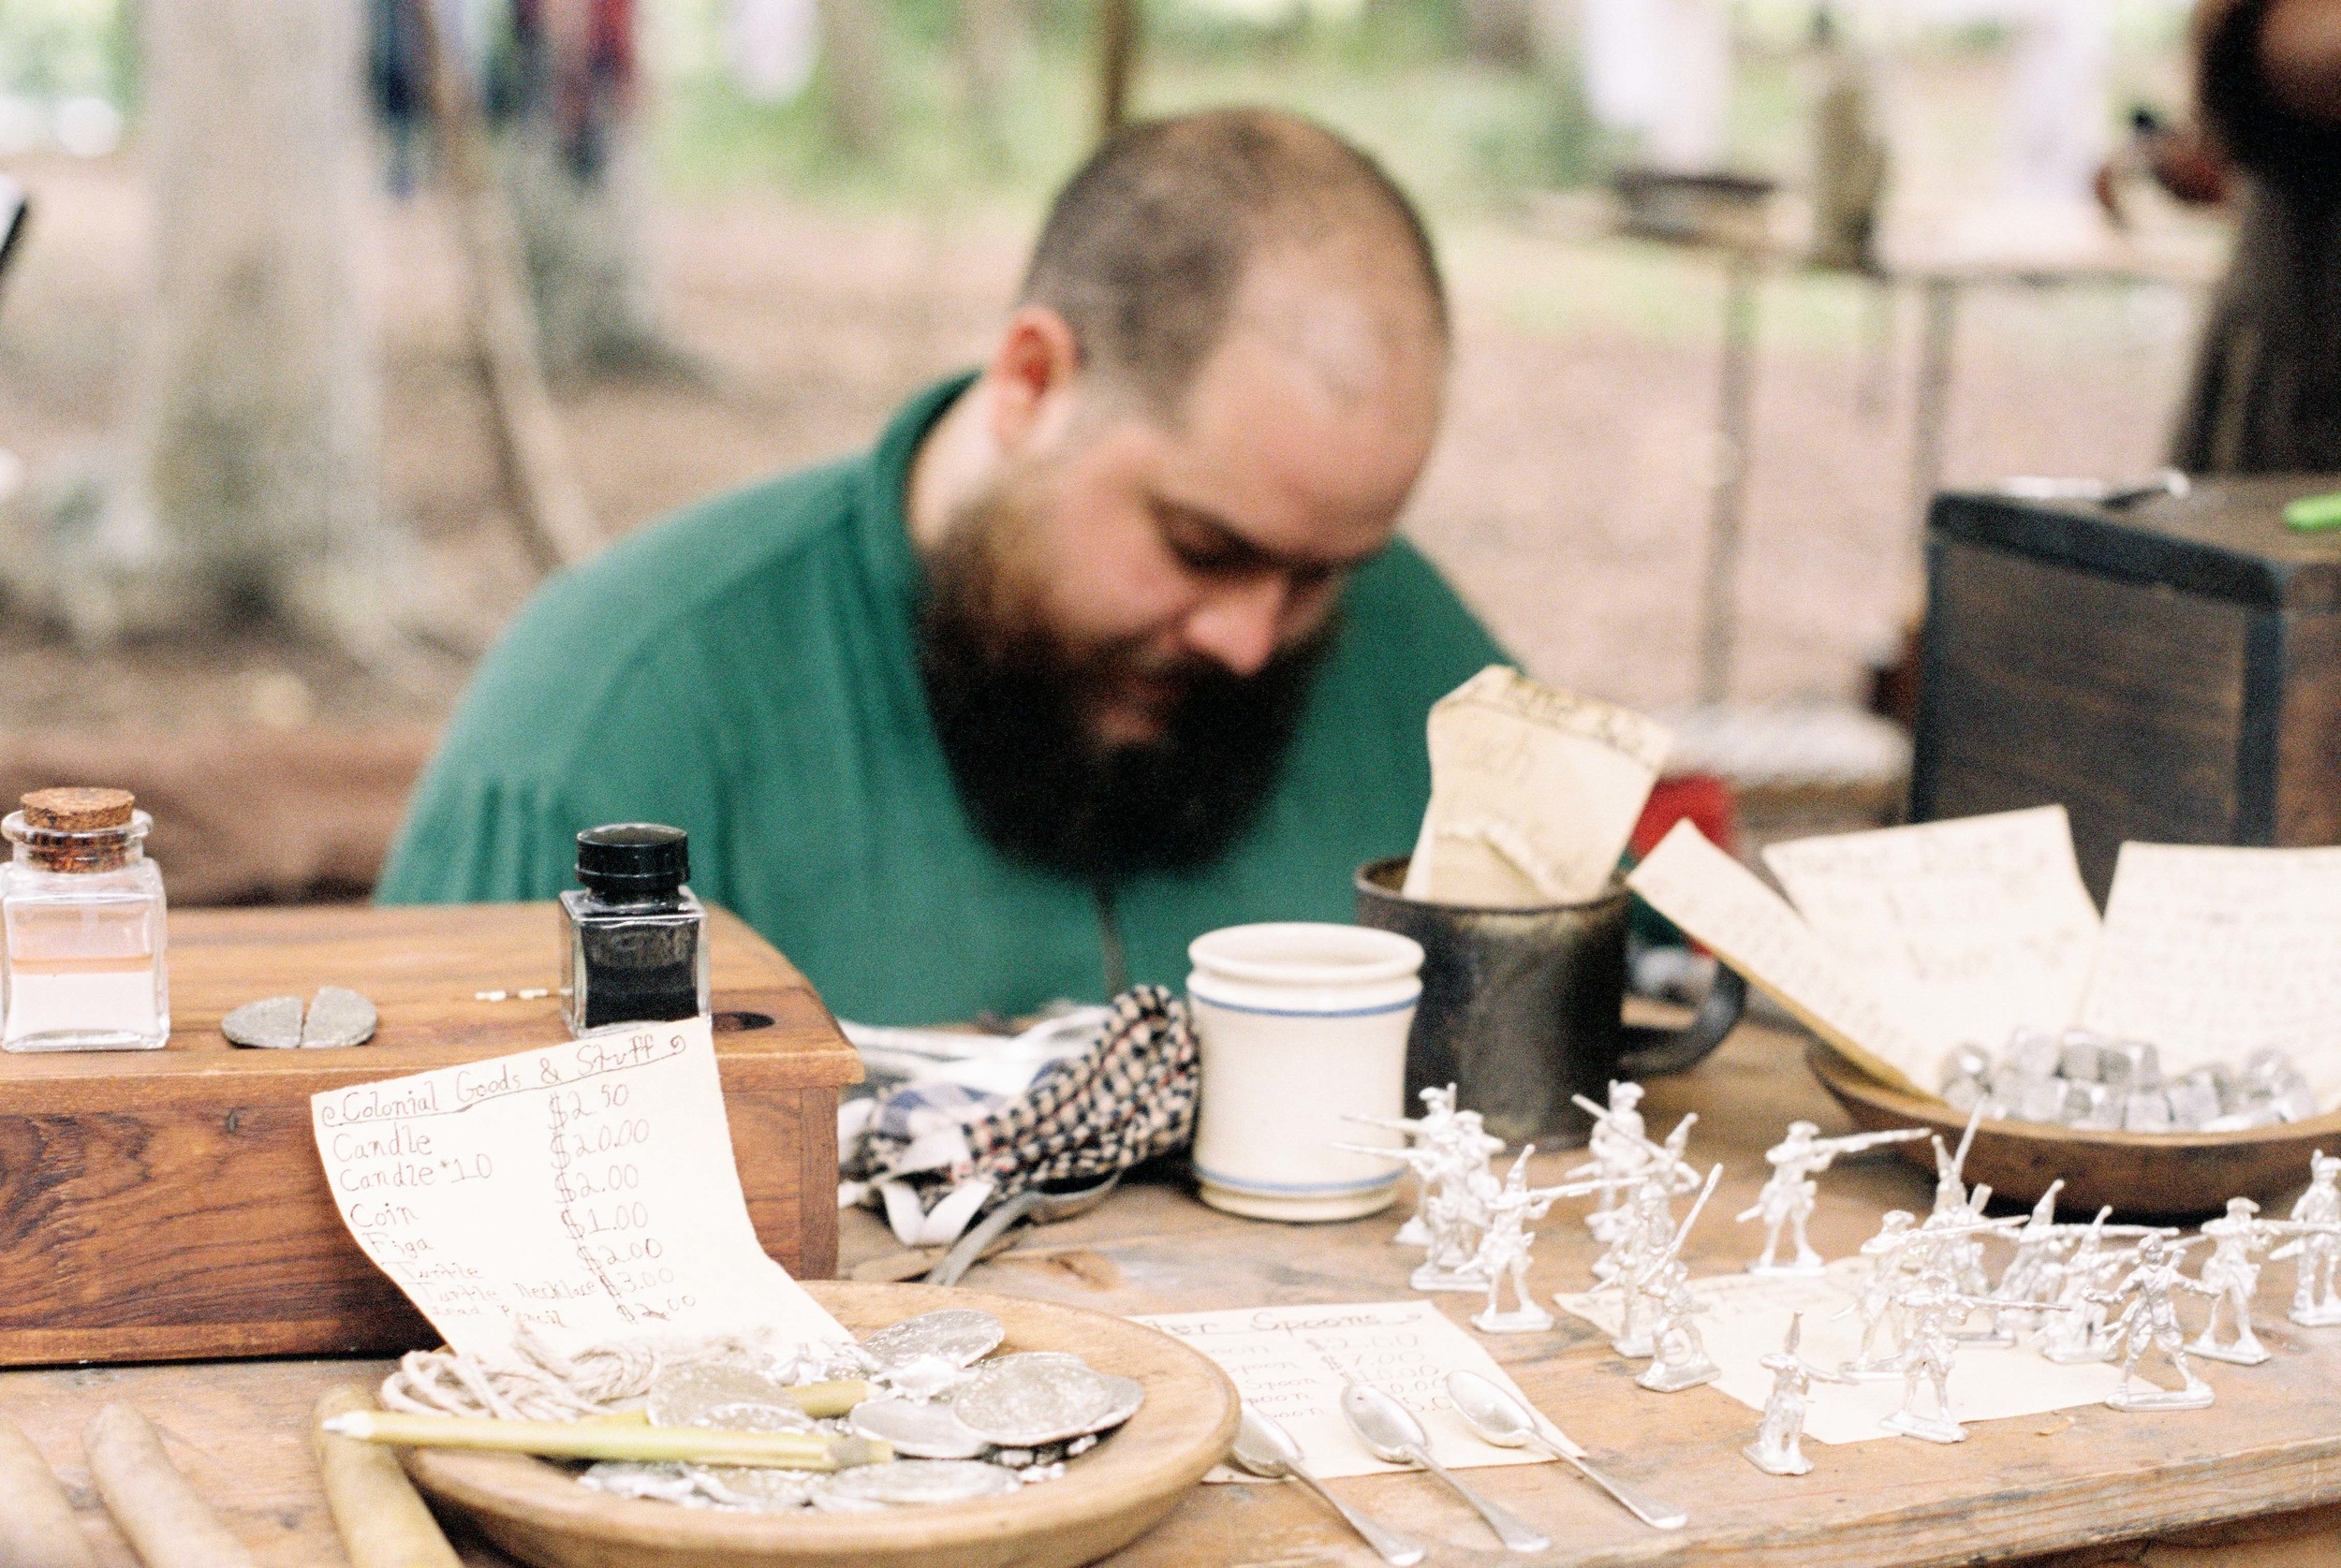 Authentic pewter toy soldiers, coins, and spoons being crafted on site by hand.